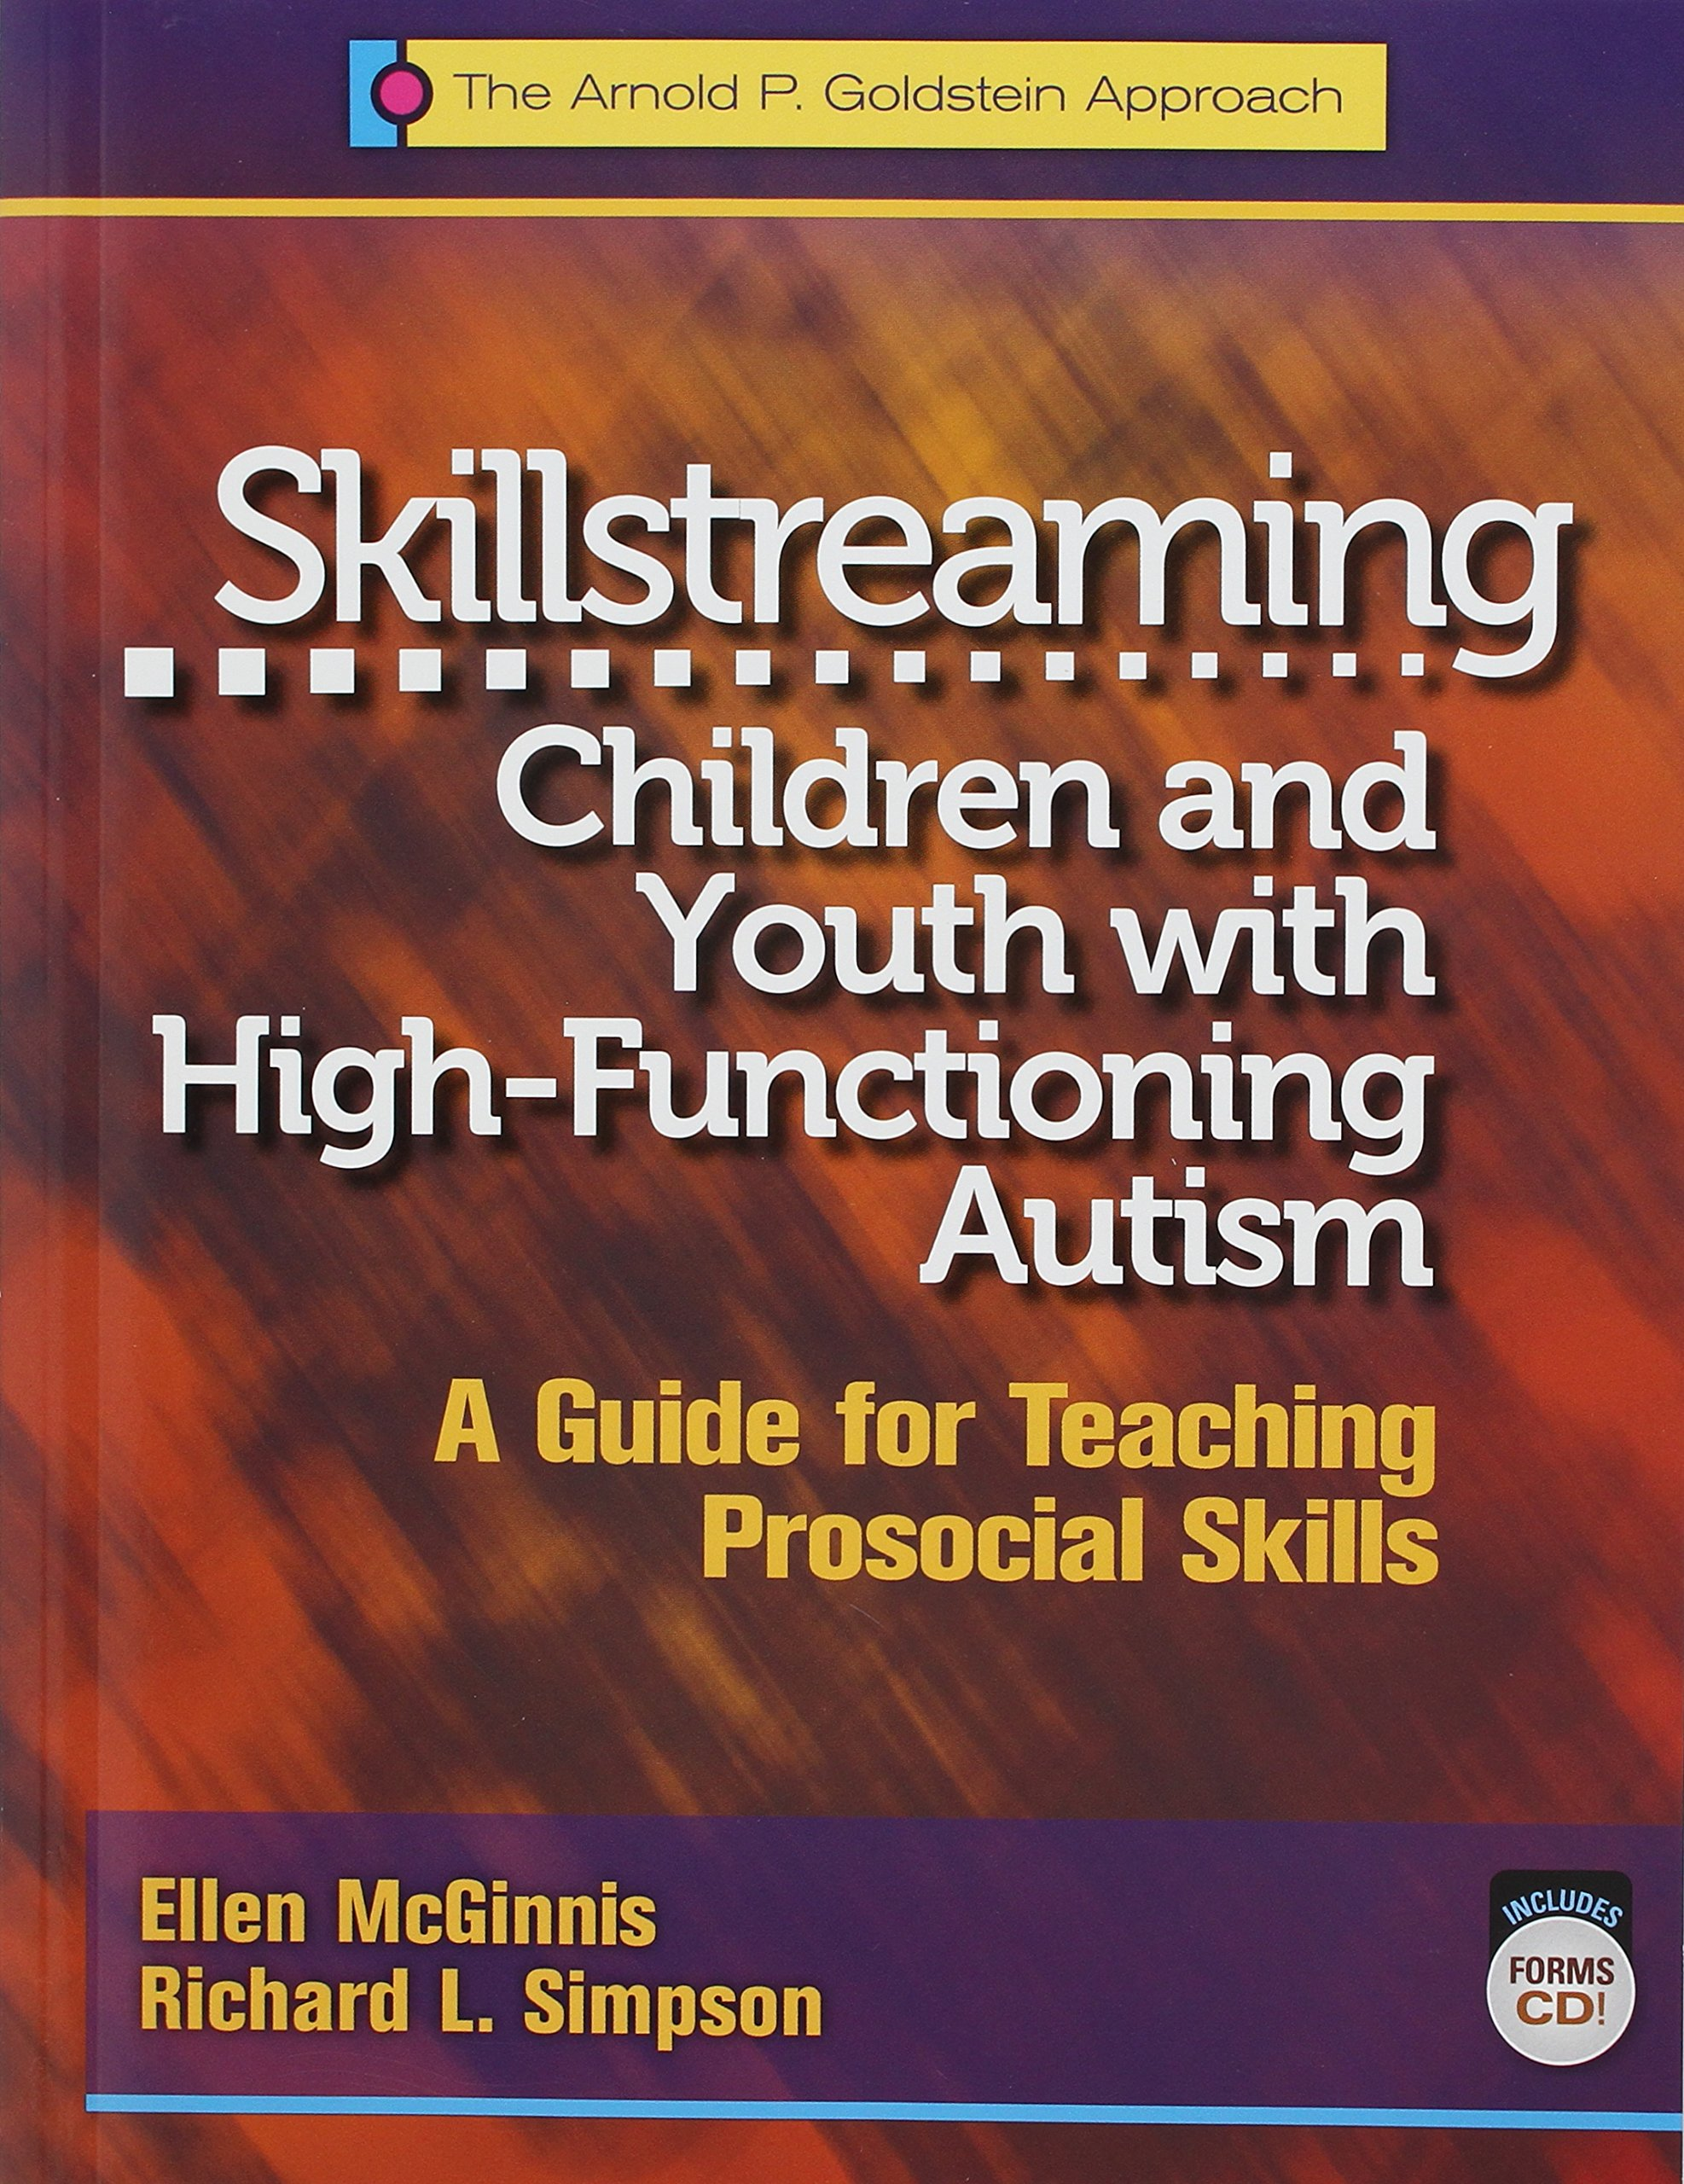 amazon skillstreaming children and youth with high functioning